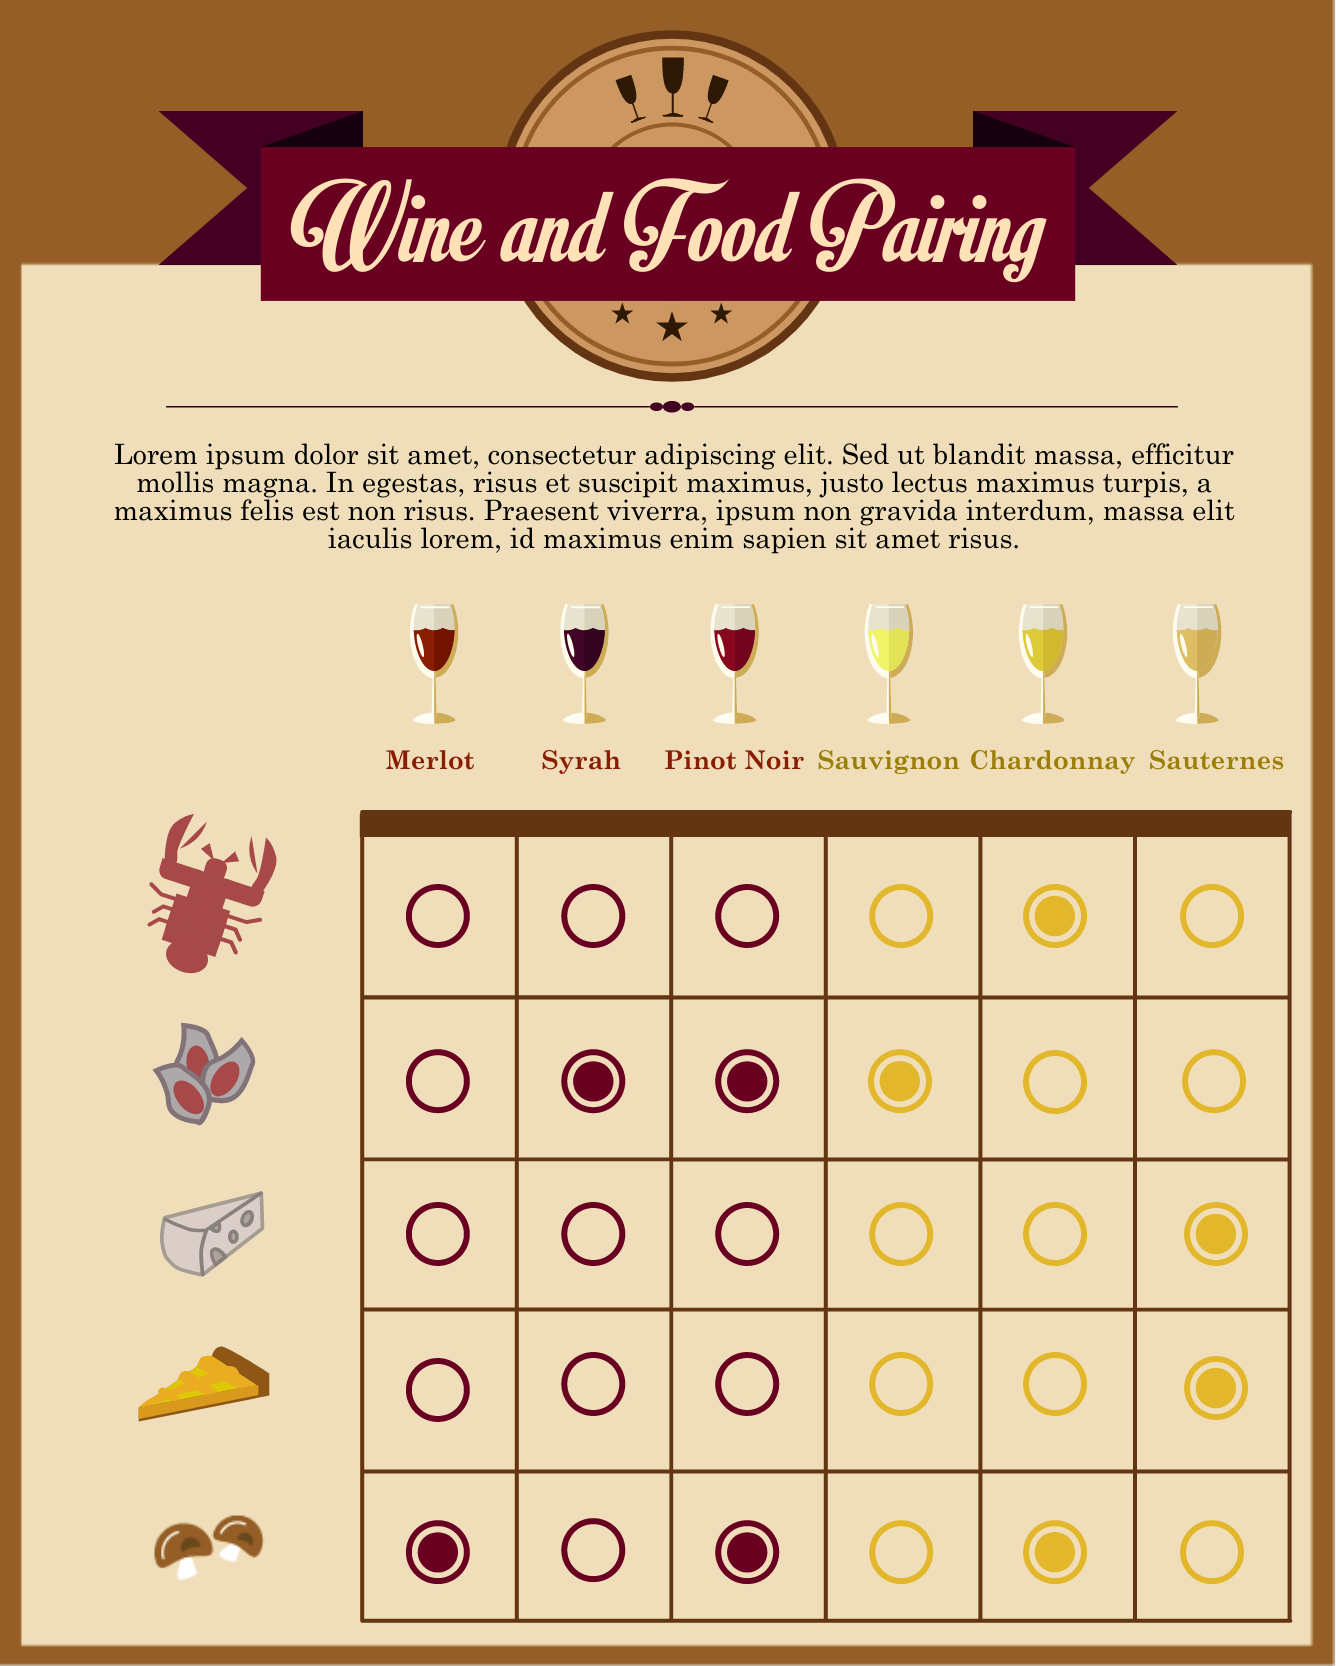 an infographic about food and wine pairing.